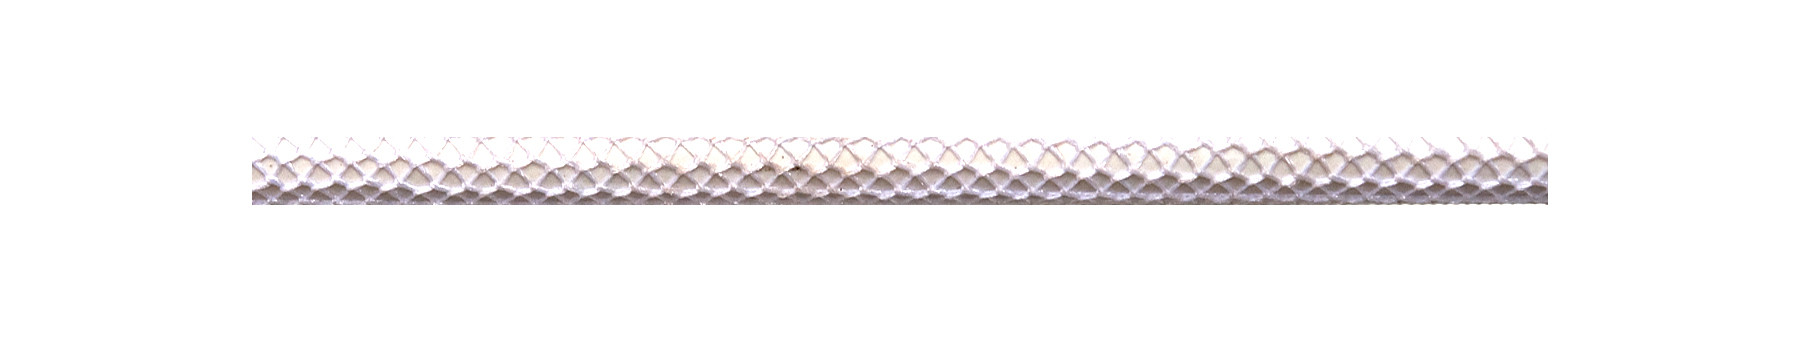 Textile Cable Shiny White Netlike Textile Covering